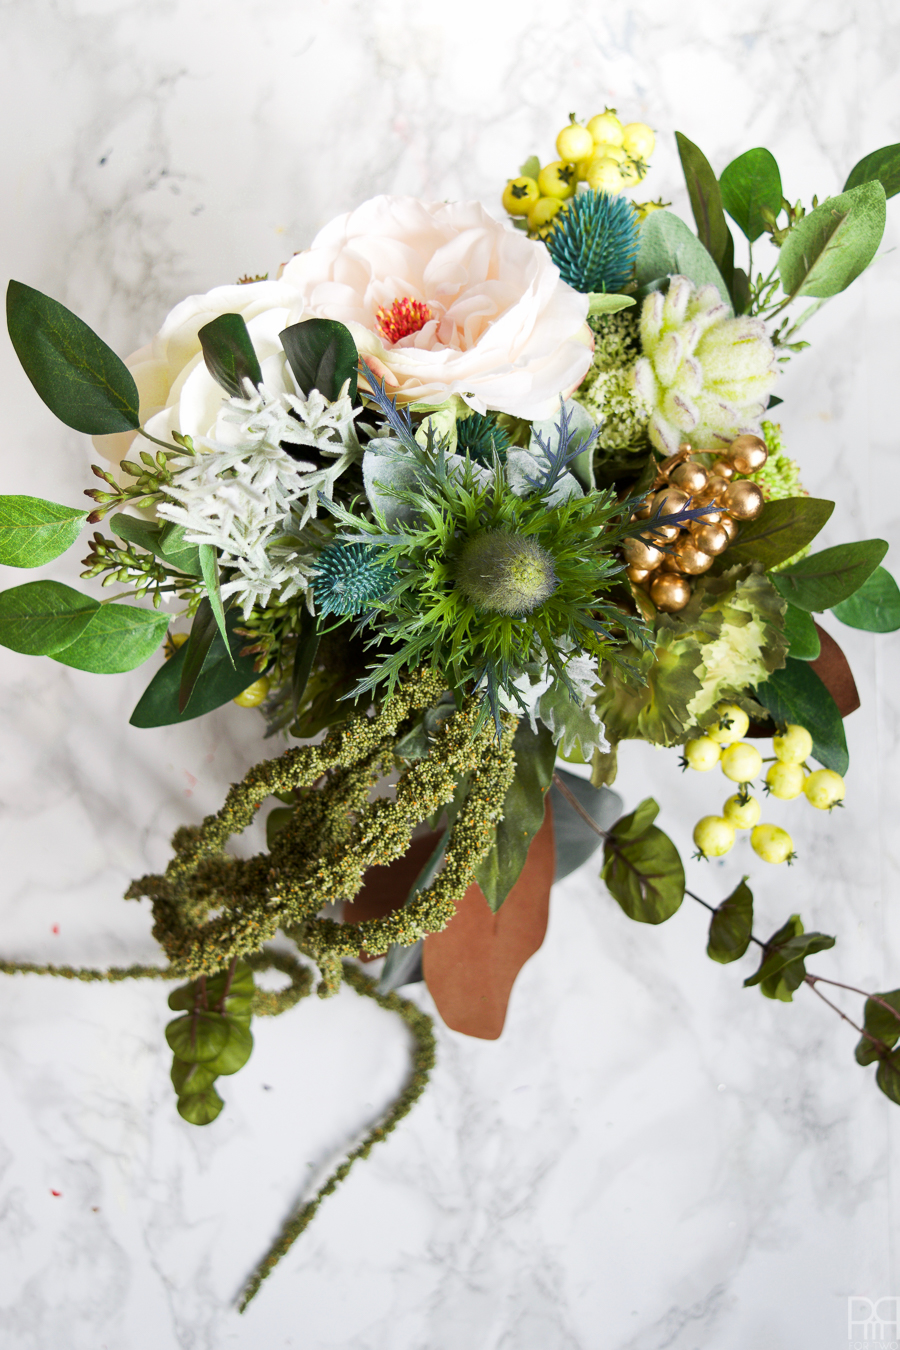 I made a winter wedding bouquet using greens, pinks, and subtle shades of blue. Perfect for any winter nuptials!